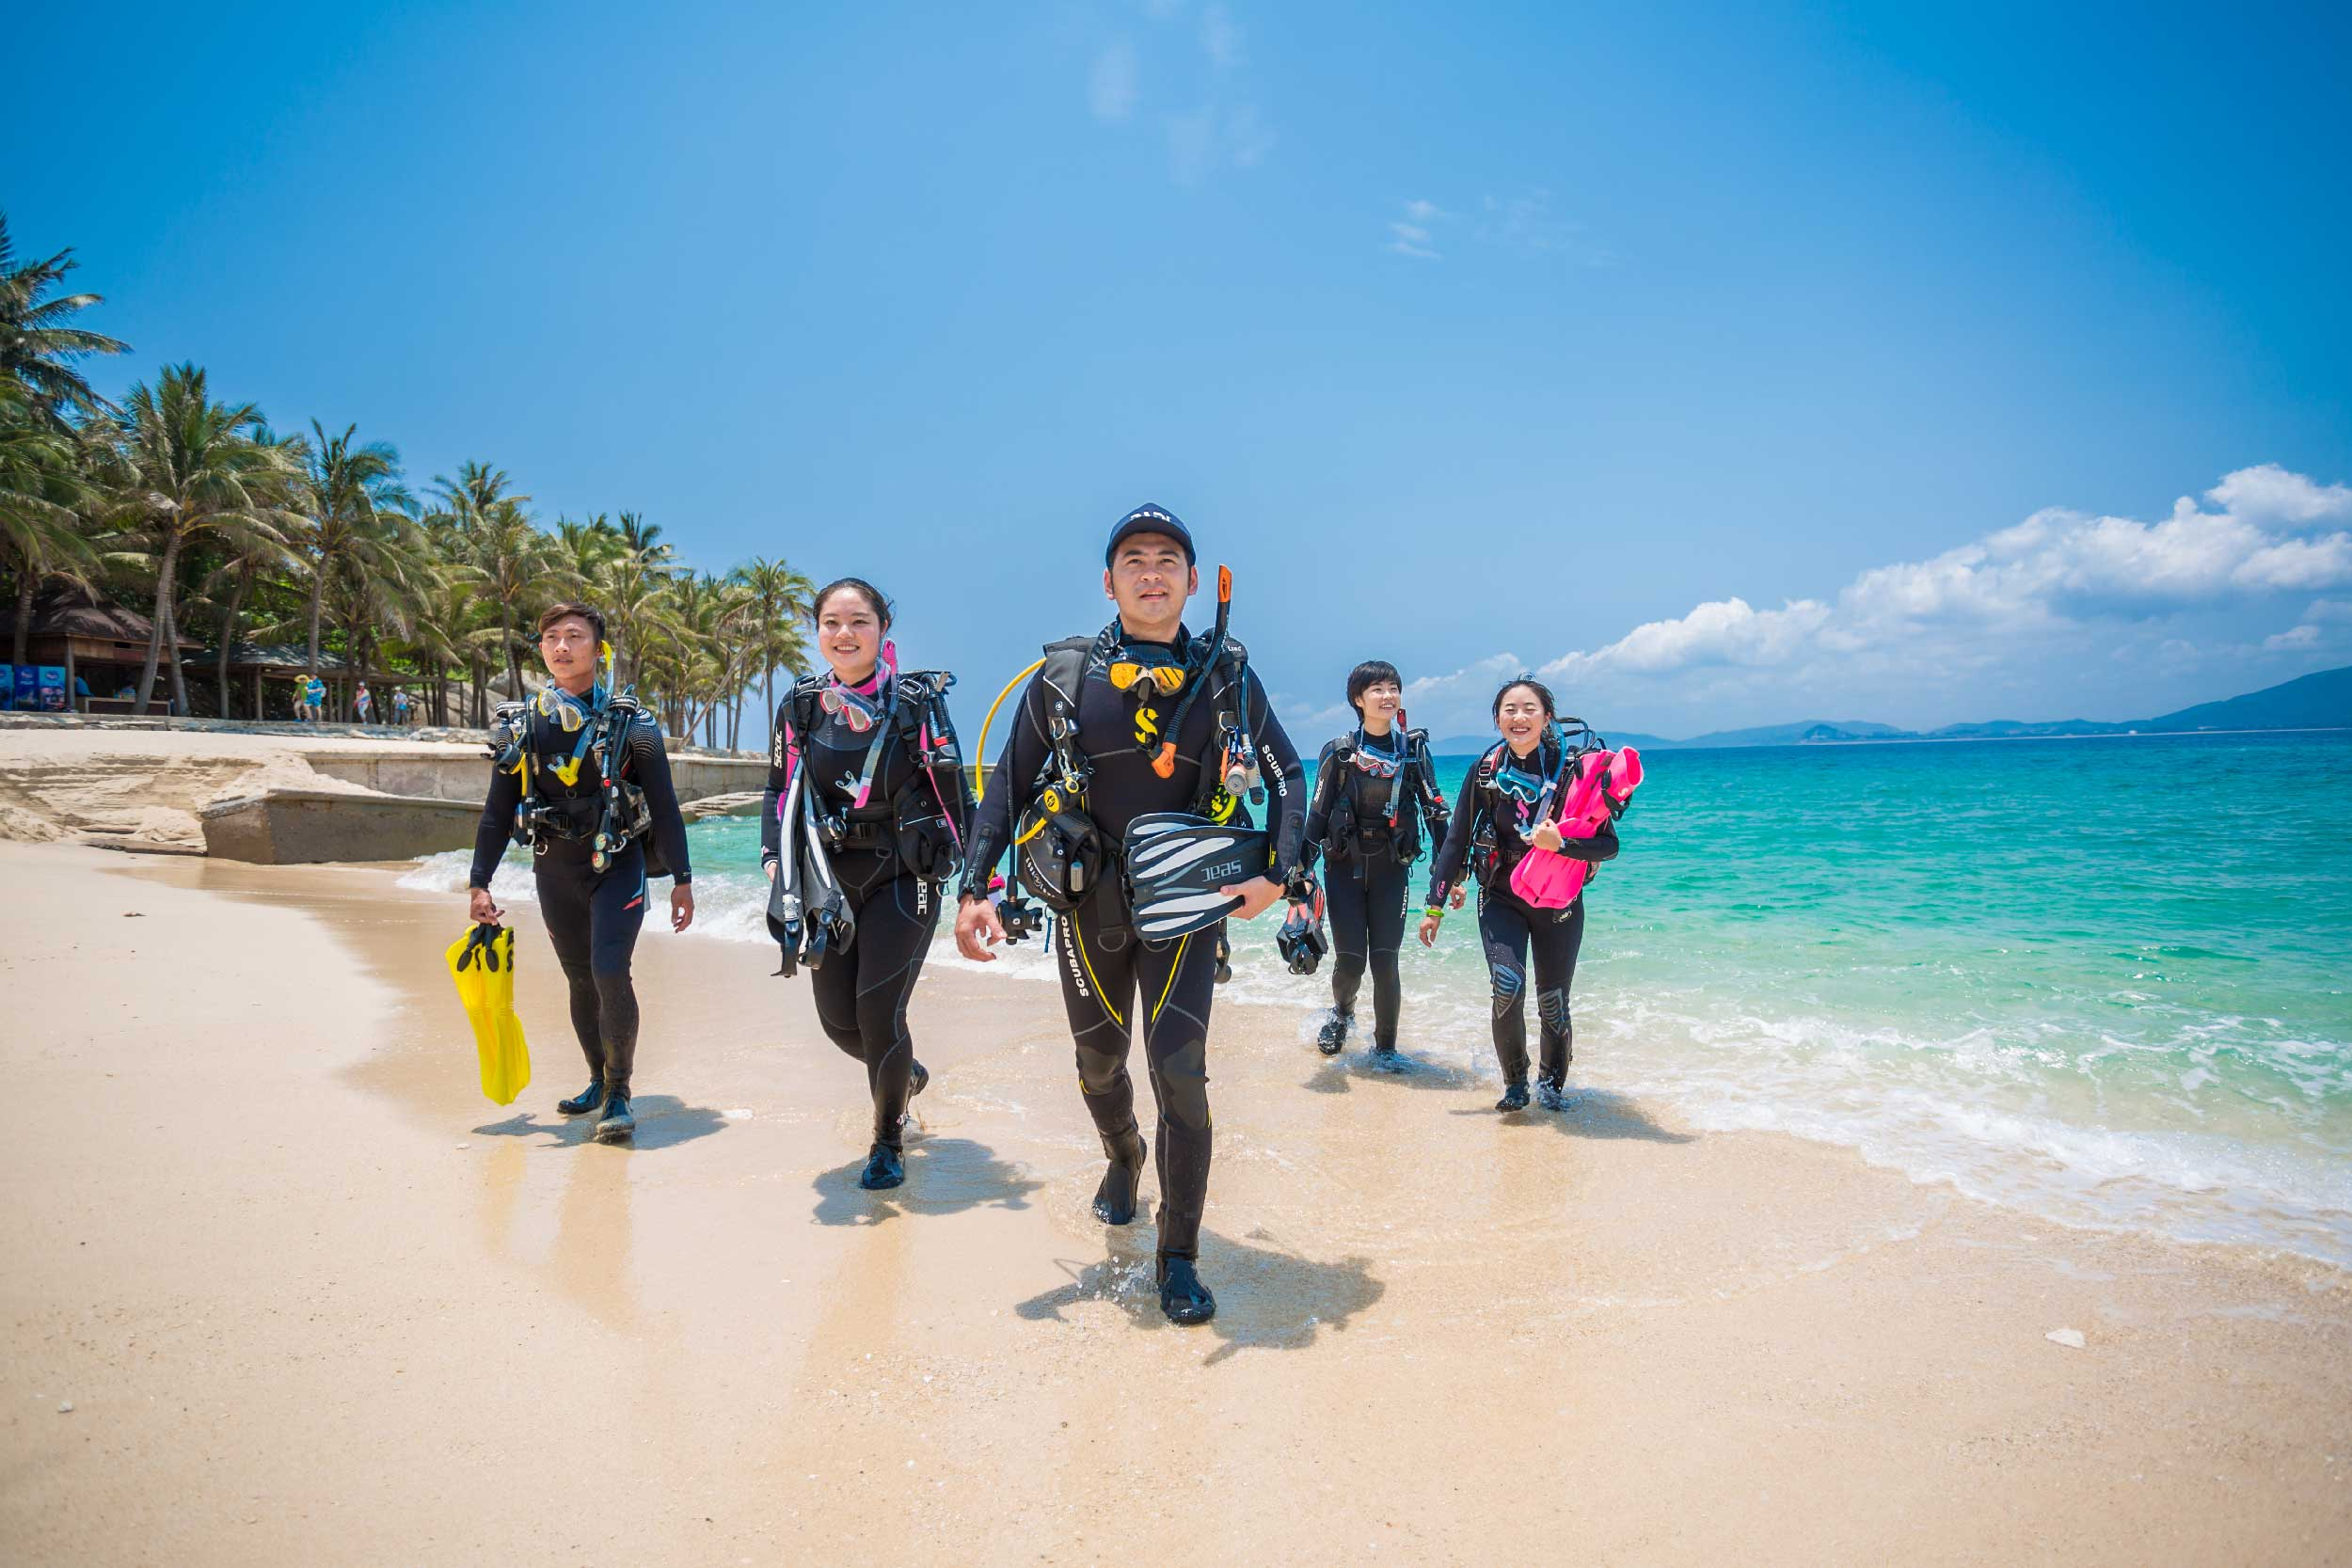 PADI Scuba divers walking out of the water wearing scuba diving equipment